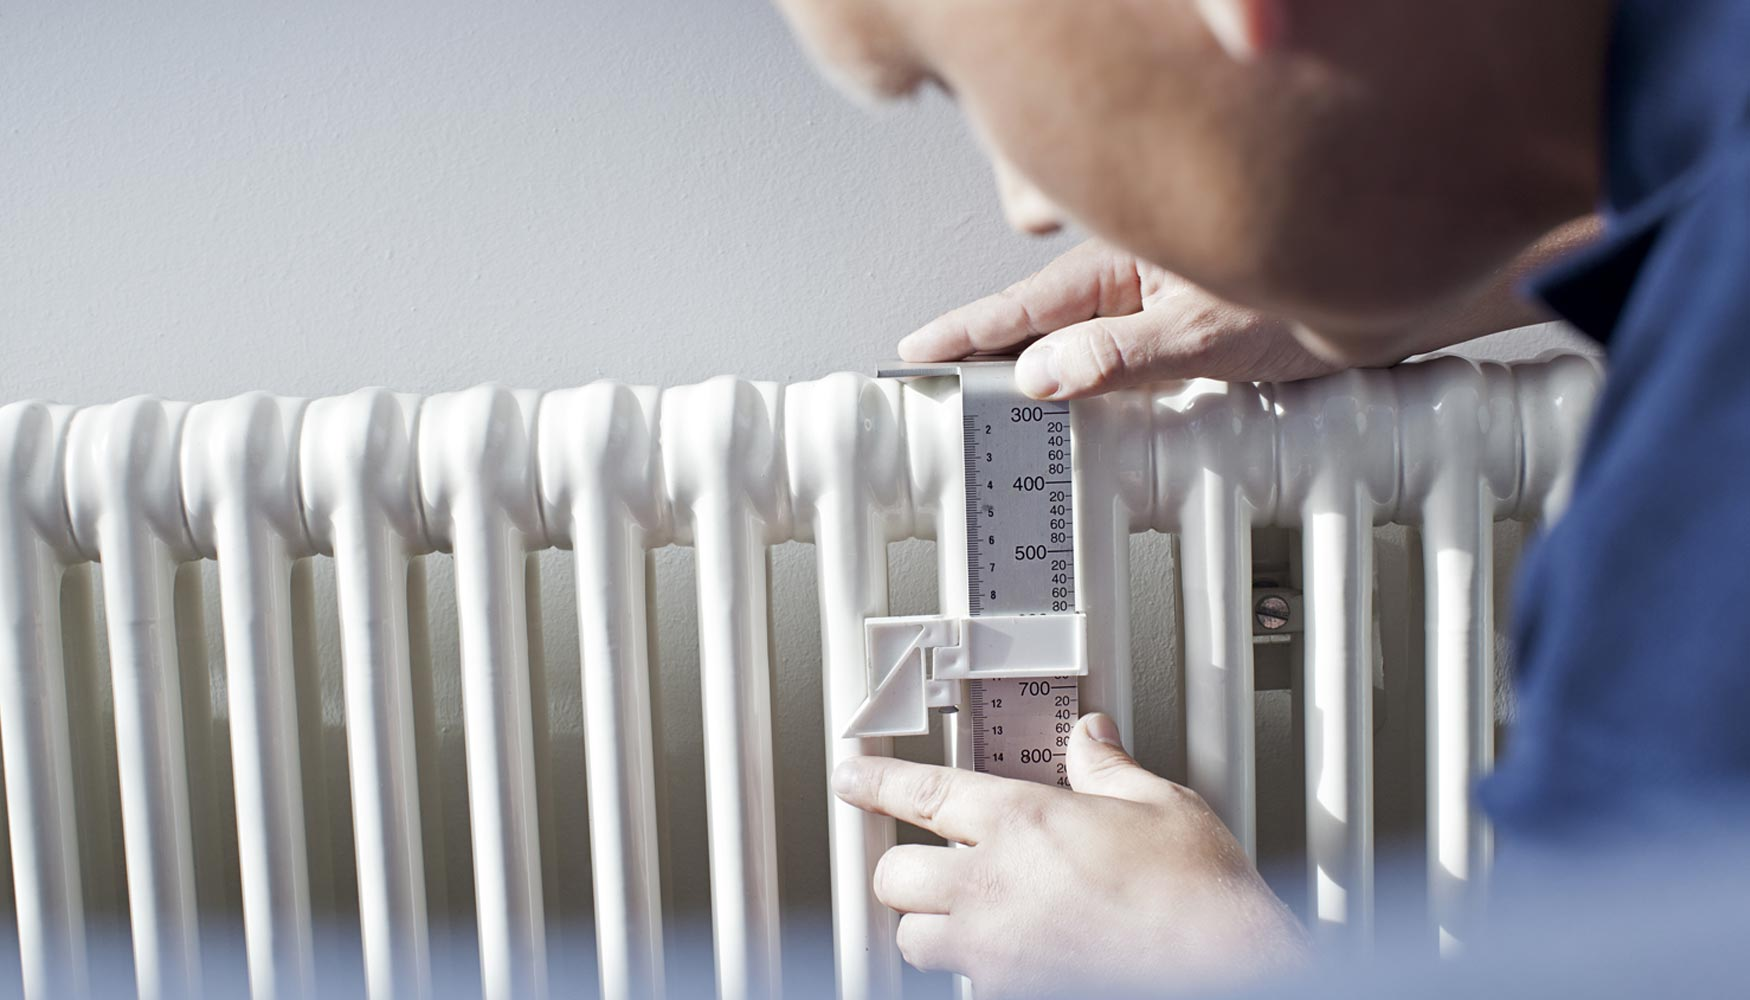 HOW TO KNOW WHAT IS MY EXPENDITURE ON HEATING WITH ALL KINDS OF DETAILS